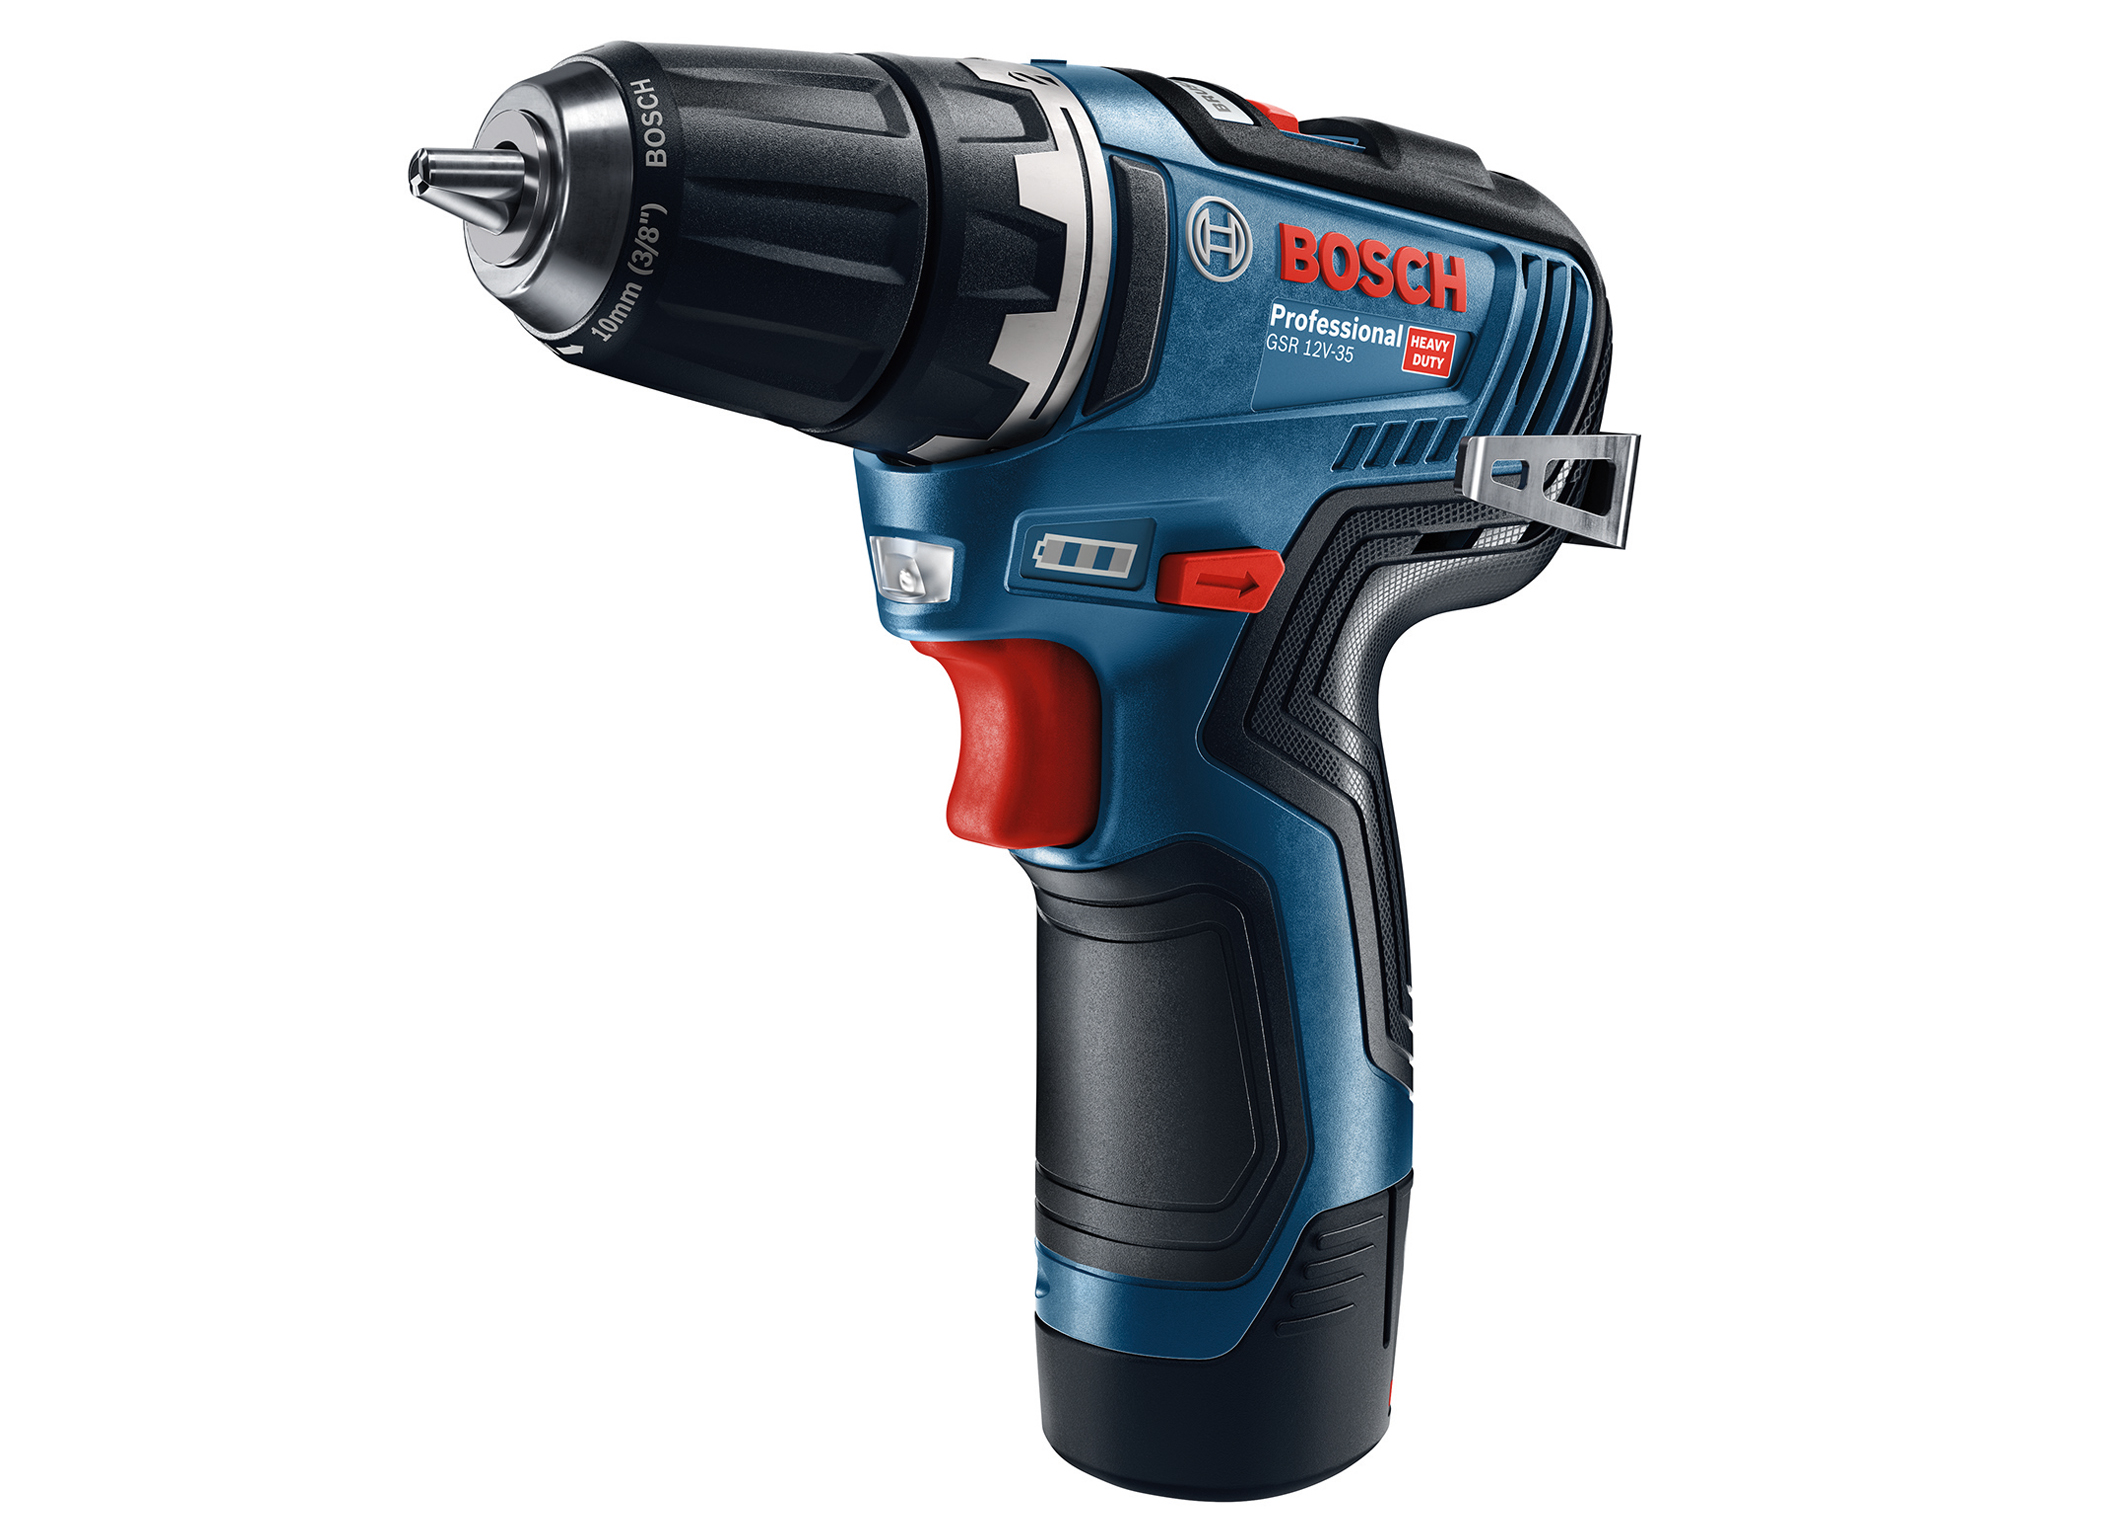 The new GSR 12V-35 Professional cordless drill/driver: Additional fixed chuck version for even more precise drilling